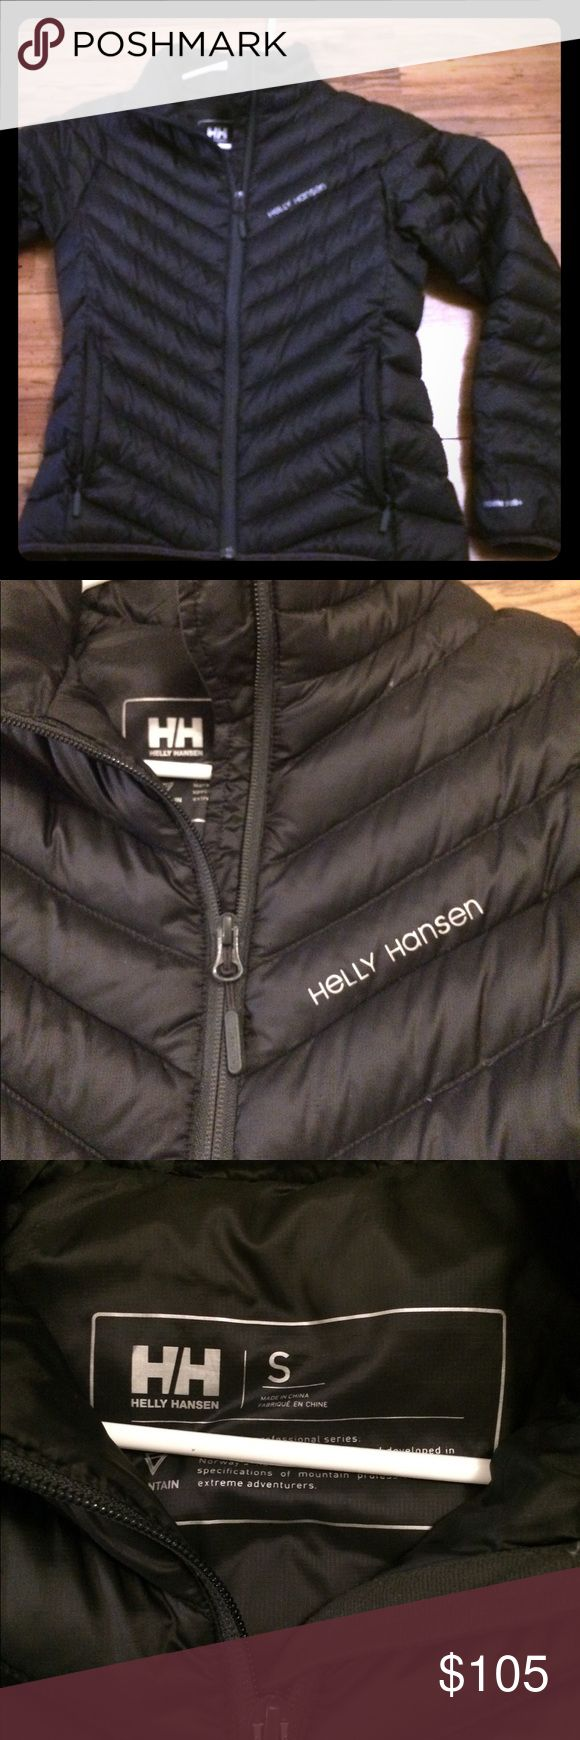 Helly Hansen 600+ down jacket Worn only a few times. Great condition Helly Hansen Jackets & Coats Puffers